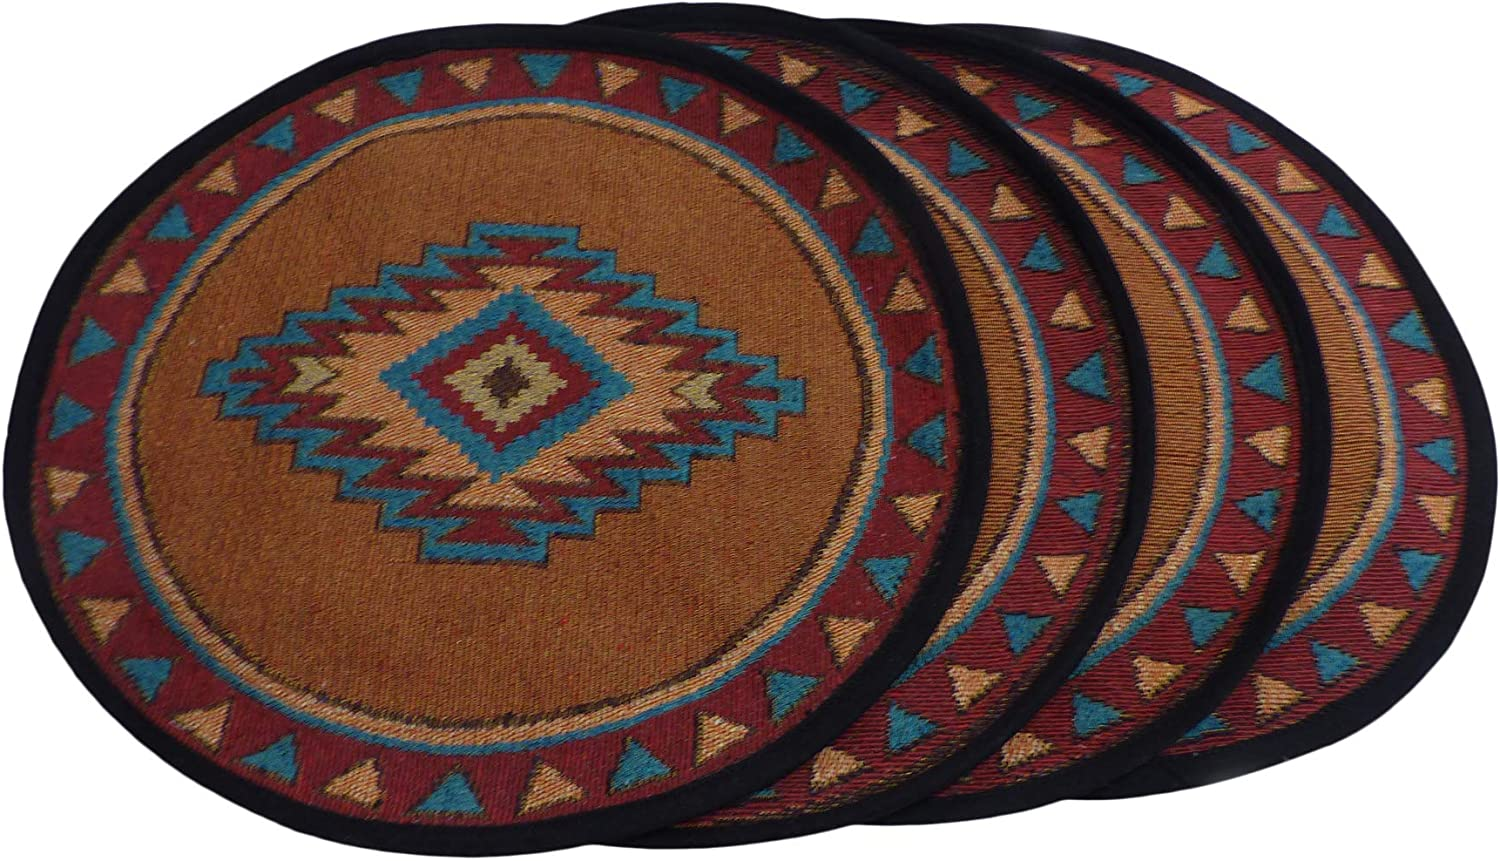 Southwestern Placemats for Dining Table - Round Southwest Place Mats Set of 4 - Southwestern Kitchen Décor Luna